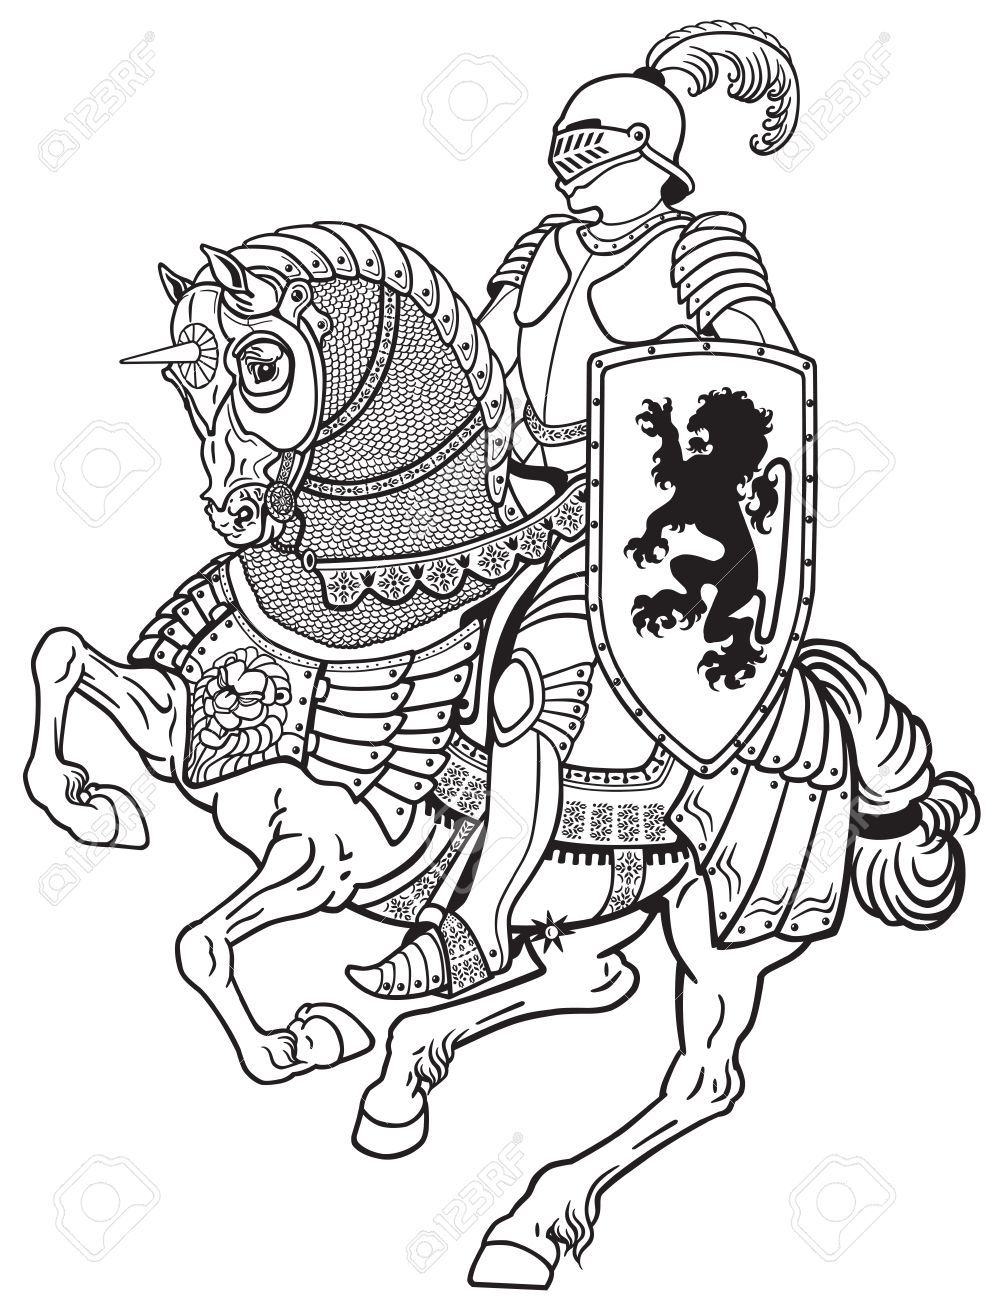 Armored hand clipart clipart stock Stock Vector | war horse | Knight drawing, Medieval knight, Knight ... clipart stock